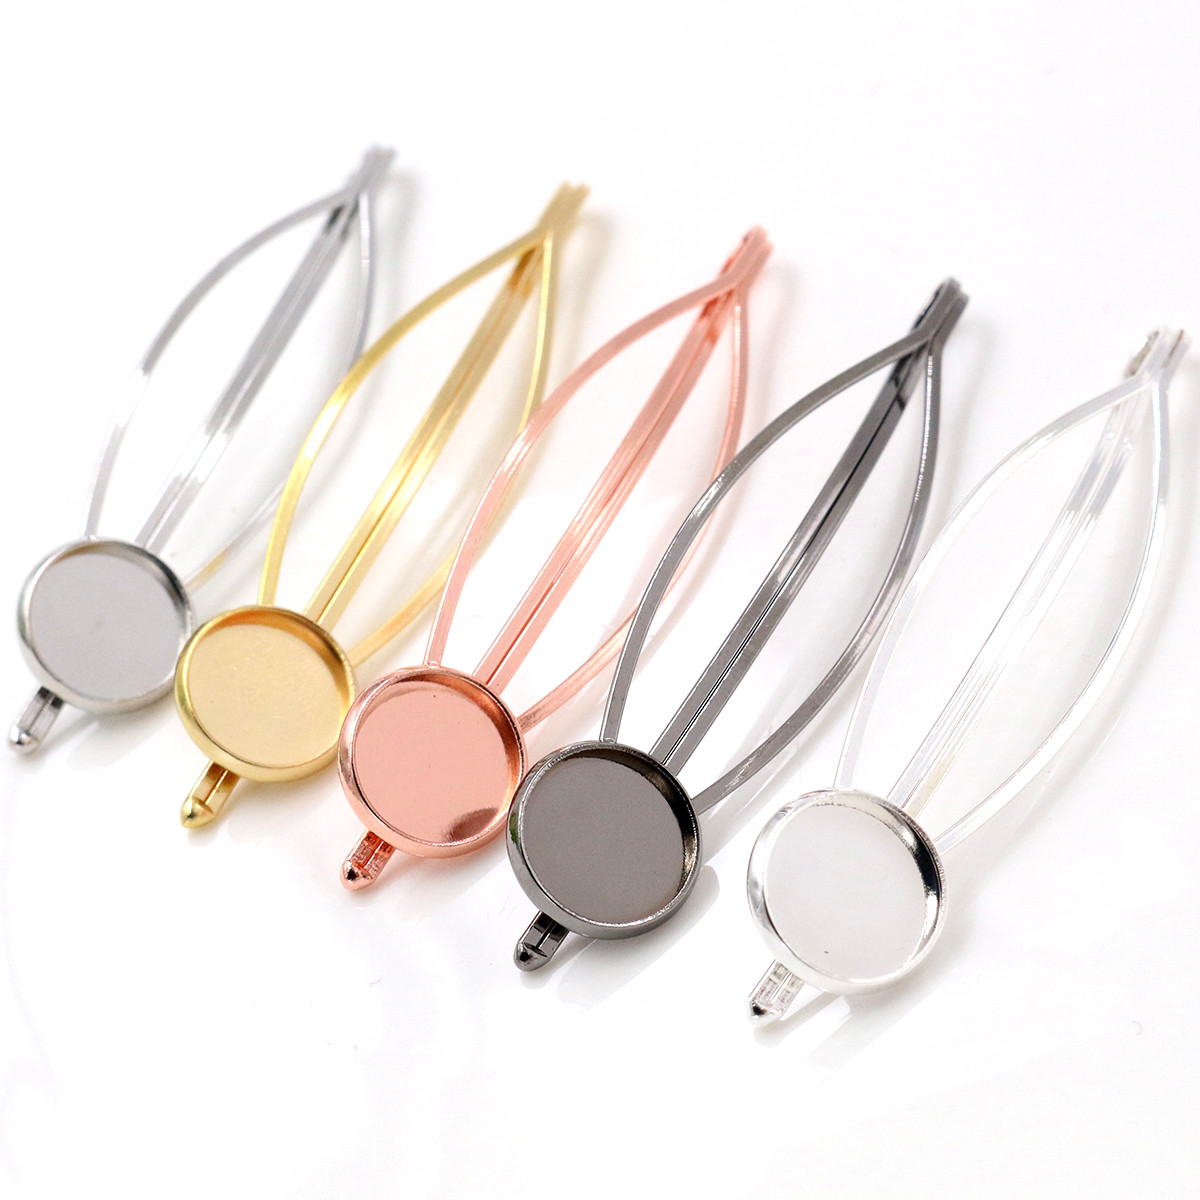 New Style 12mm 10pcs High Quality 5 Colors Plated Copper Material Popular Hairpin Hair Clips Hairpin Base Setting Cameo